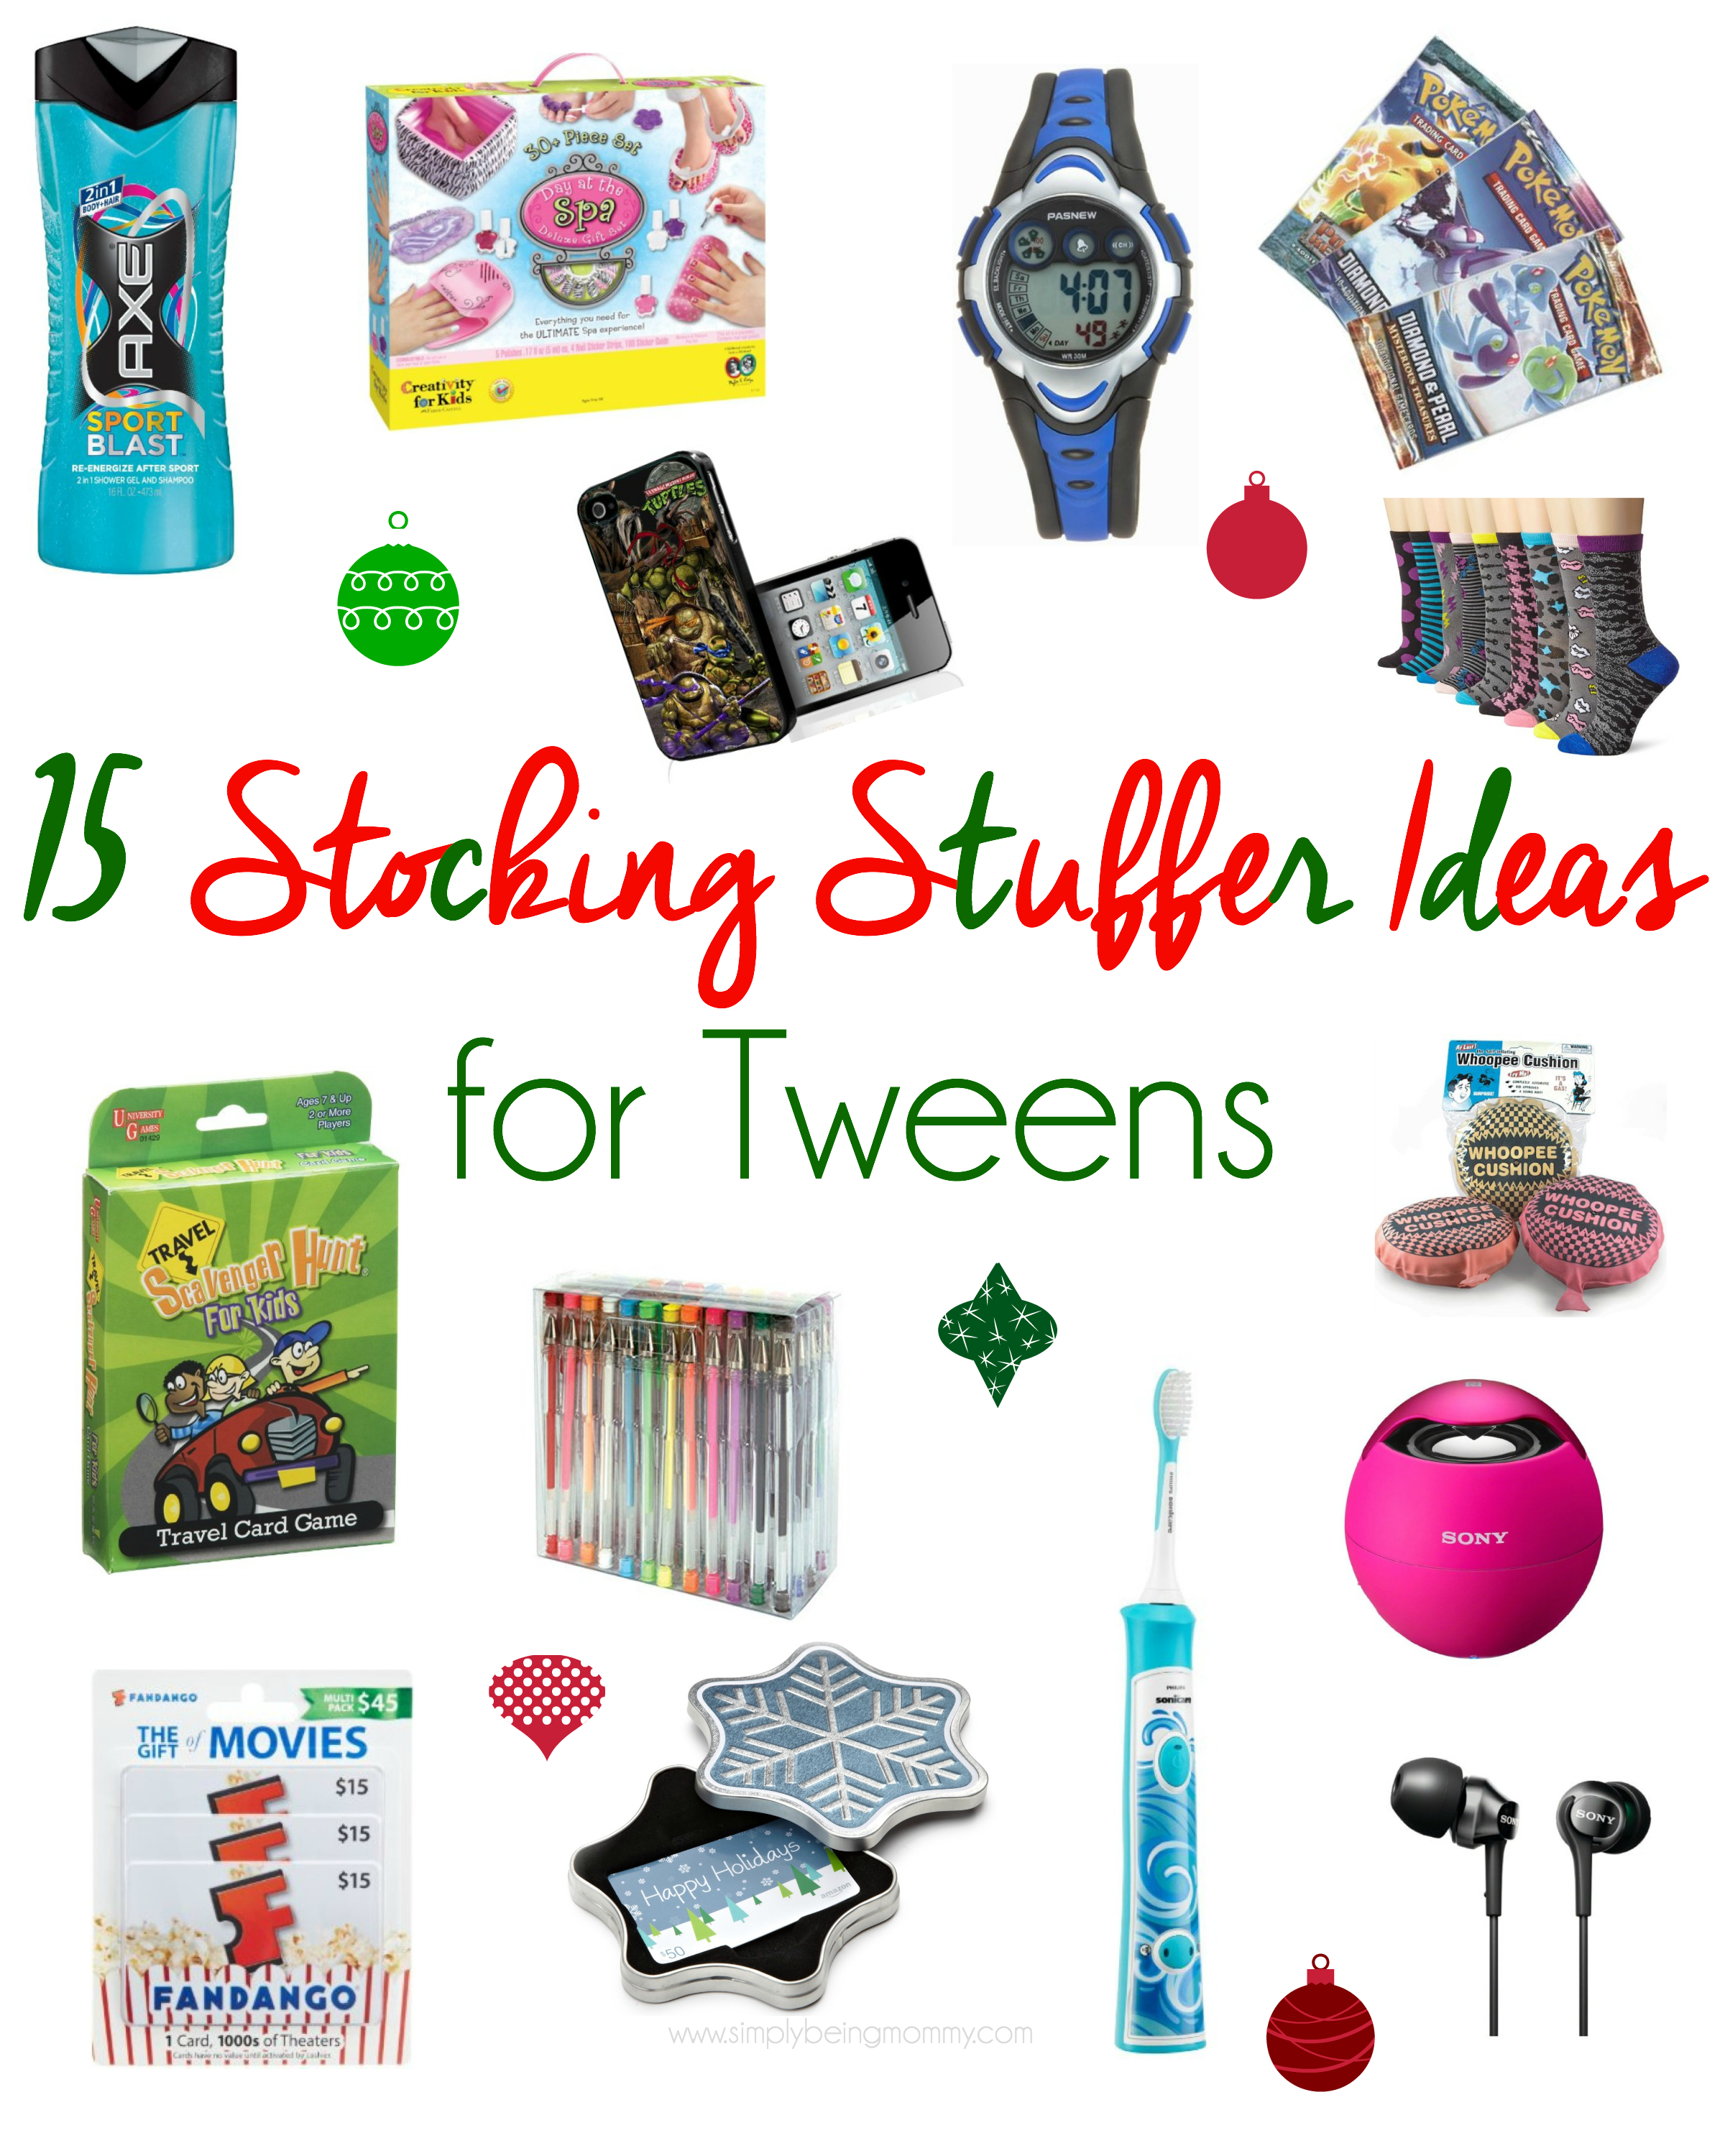 Stocking stuffer ideas for tweens unique stocking stuffer for Good ideas for stocking stuffers